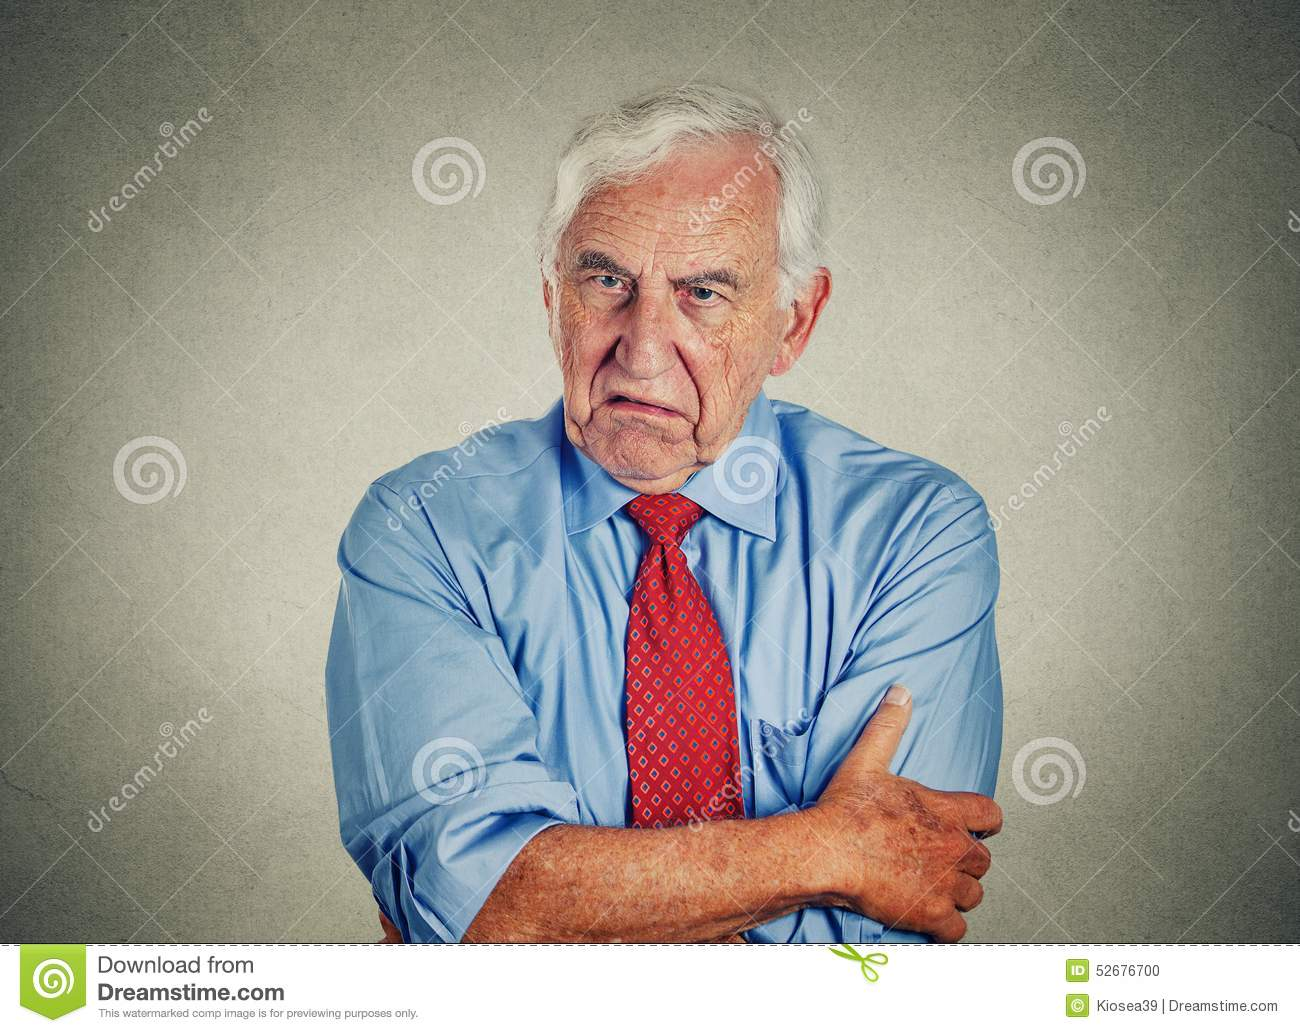 Angry grumpy off senior mature man